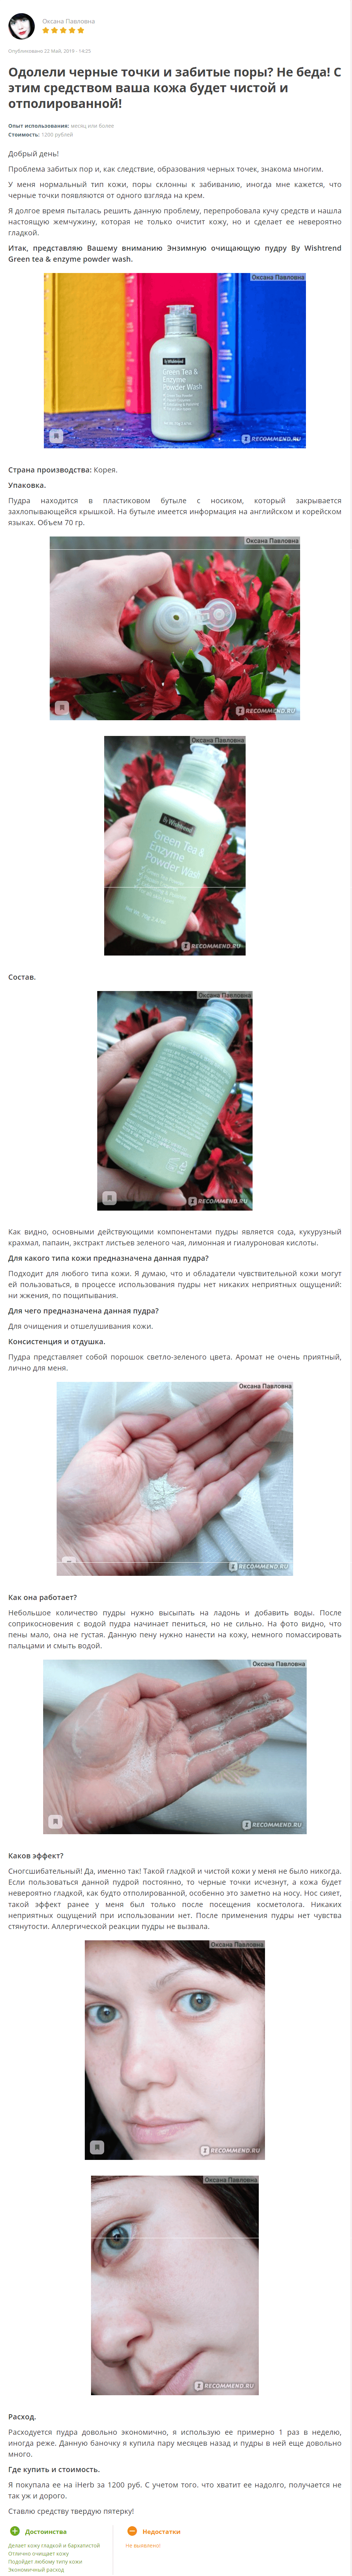 Green Tea & Enzyme Powder Wash [By Wishtrend] отзыв 1 (1)